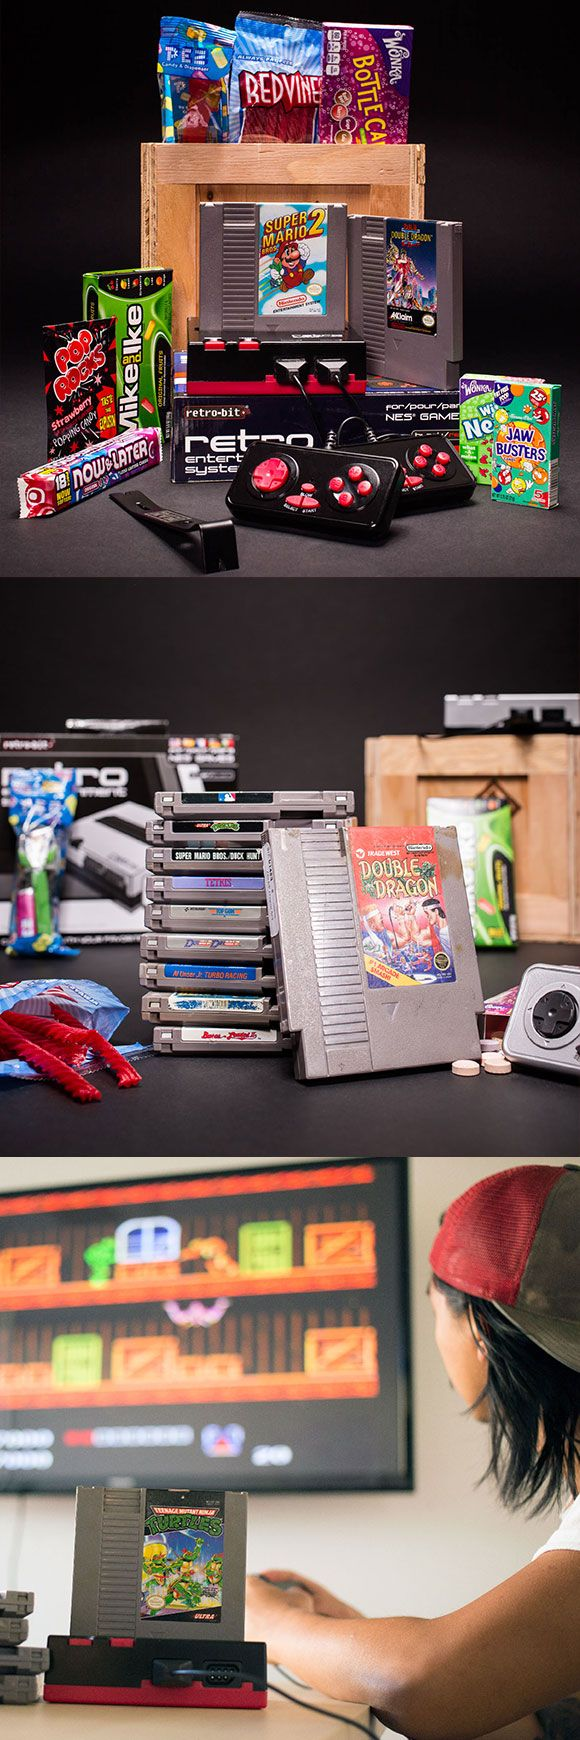 Is your Dad a classic gamer? He may poke at his smart phone like it's an alien life form, but get this Retro-Bit NES console into his hands, and his muscle memory will kick in faster than a Street Figher II Hurricane Kick.  The Retro Gamer Crate will breath new life into his old school NES collection and send him  on a sugar-fueled nostalgia trip back to simpler times. The perfect gift for the Gamer Dad.